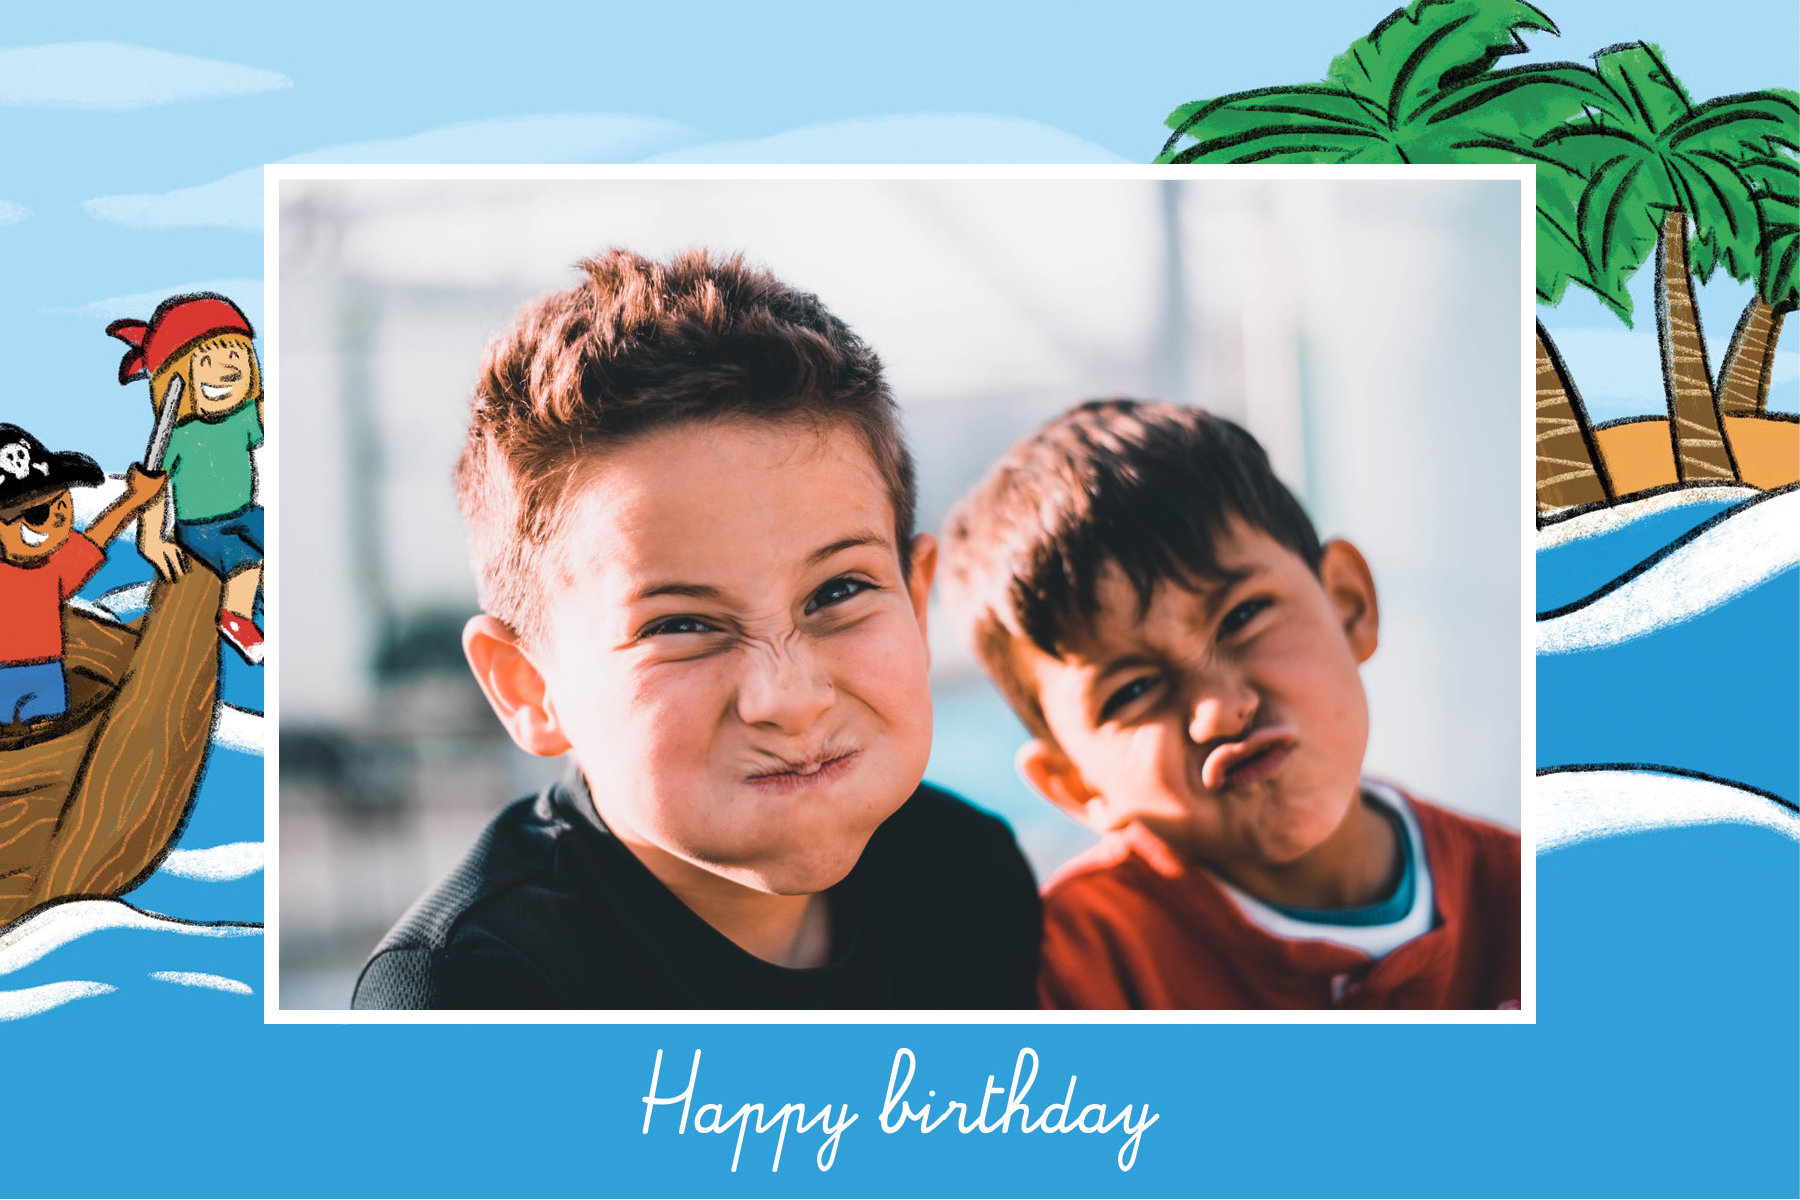 Children Fizzer birthday postcard